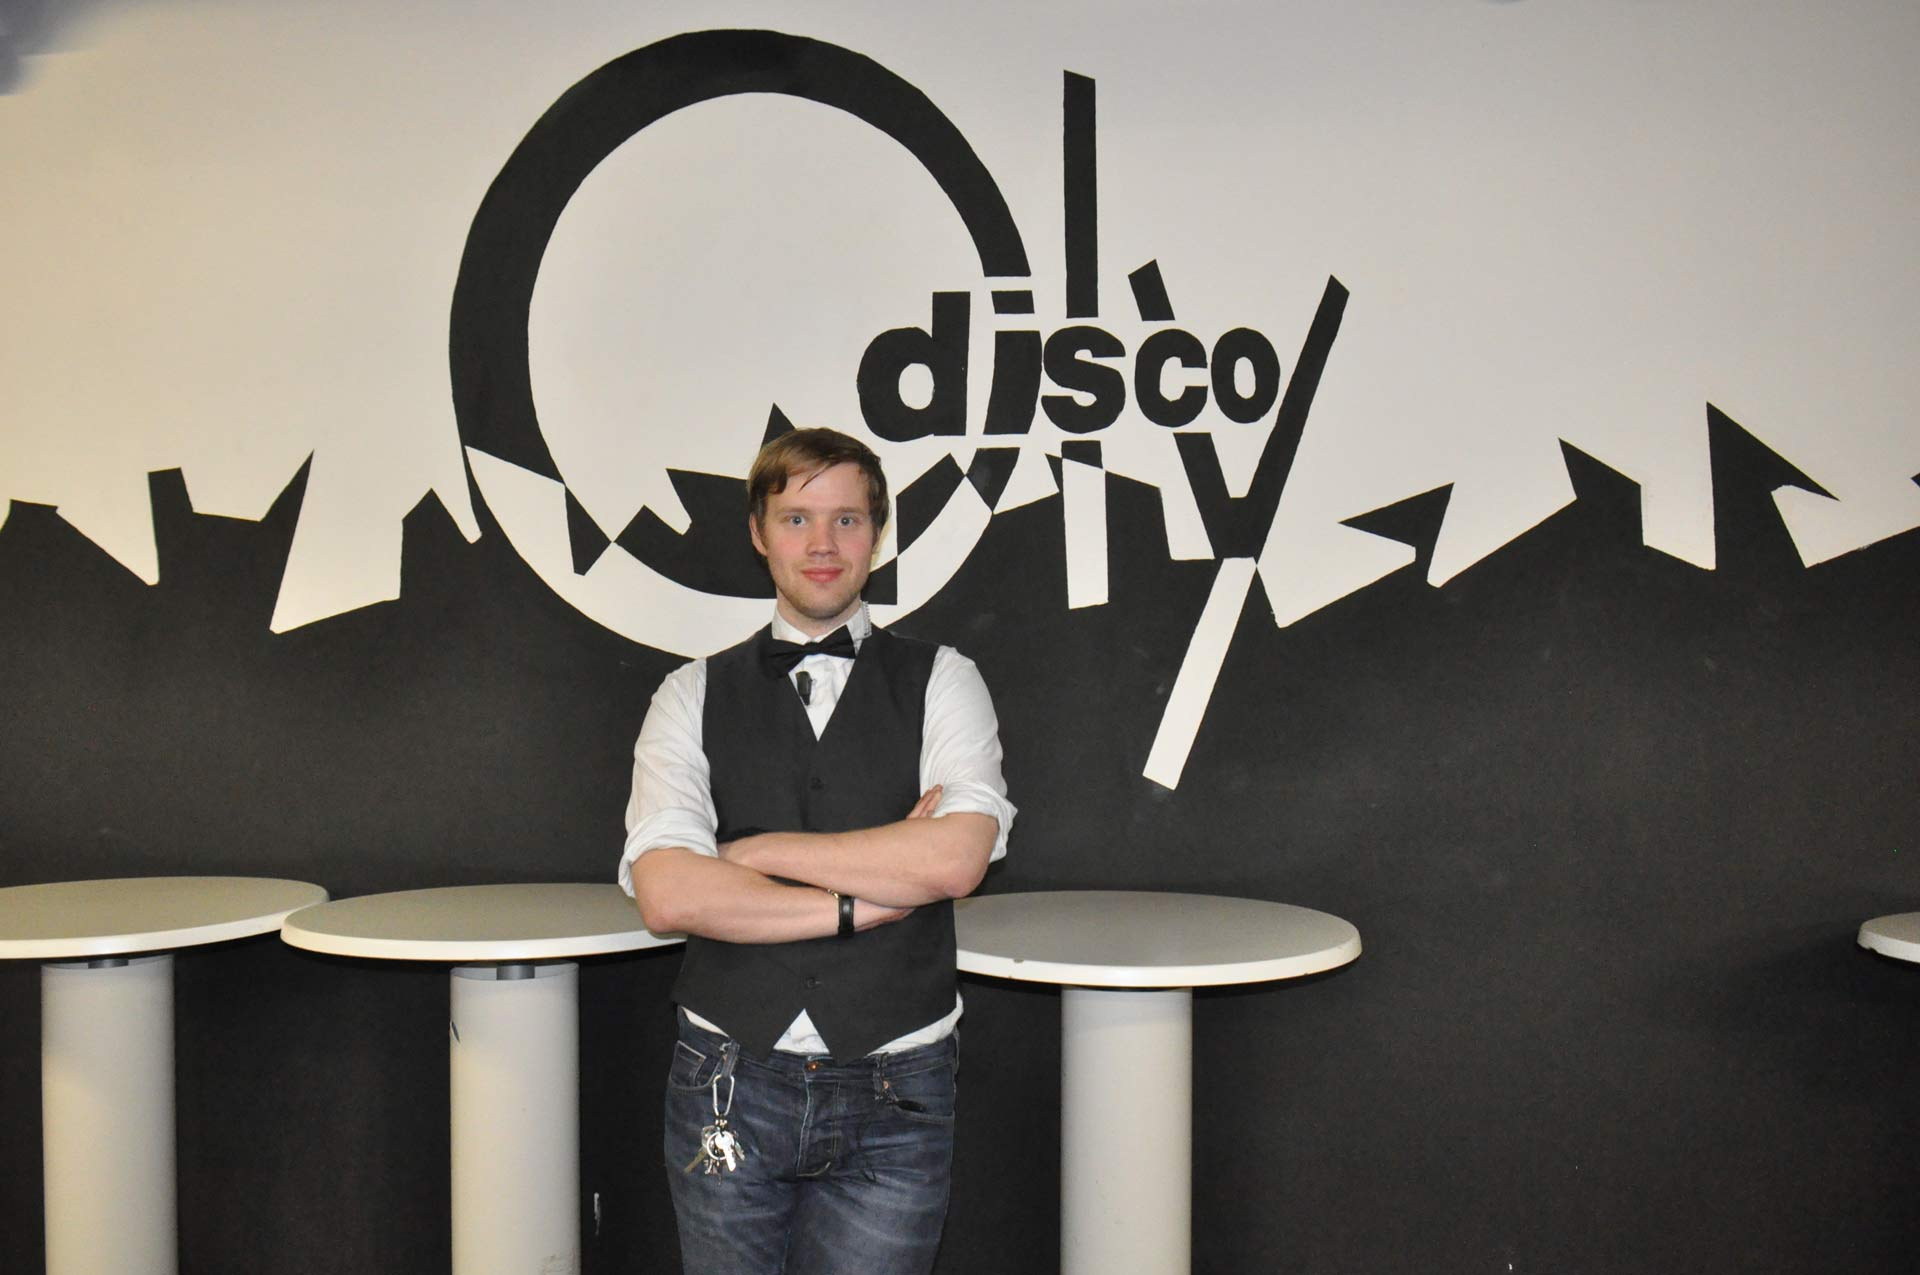 Oly-Disco und Oly-Lounge